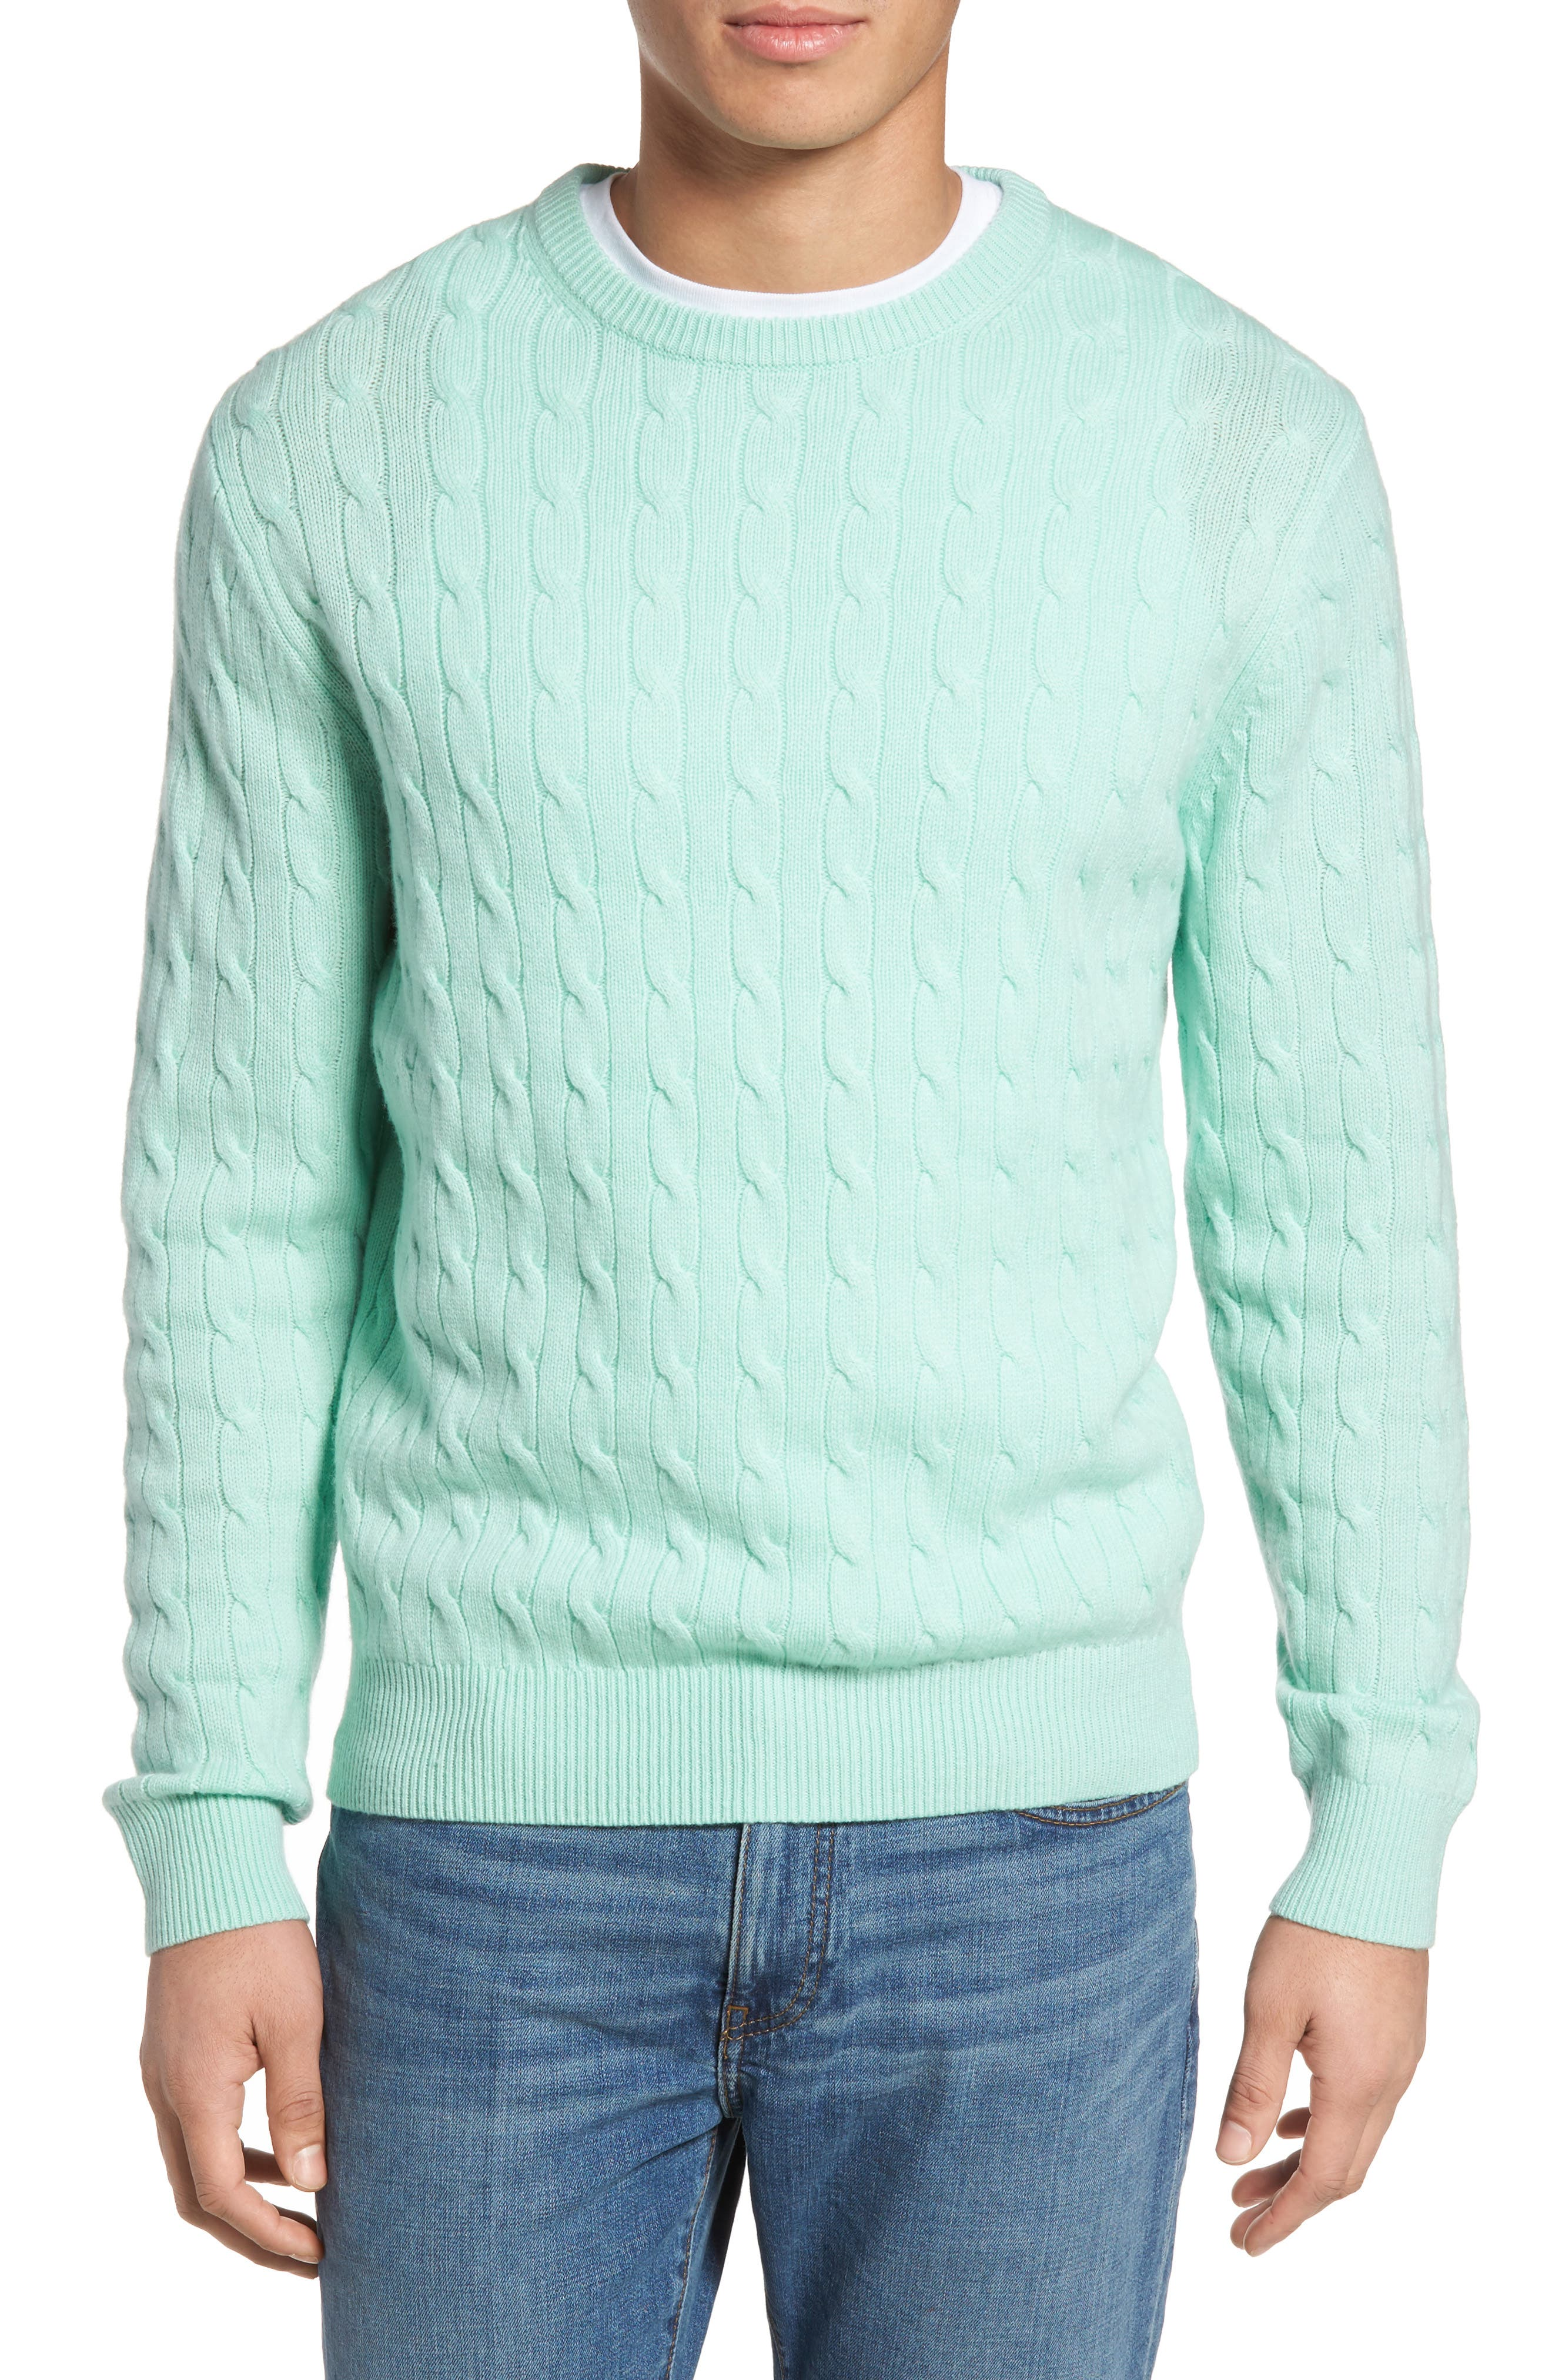 Wool & Cashmere Cable Knit Sweater,                             Main thumbnail 1, color,                             301